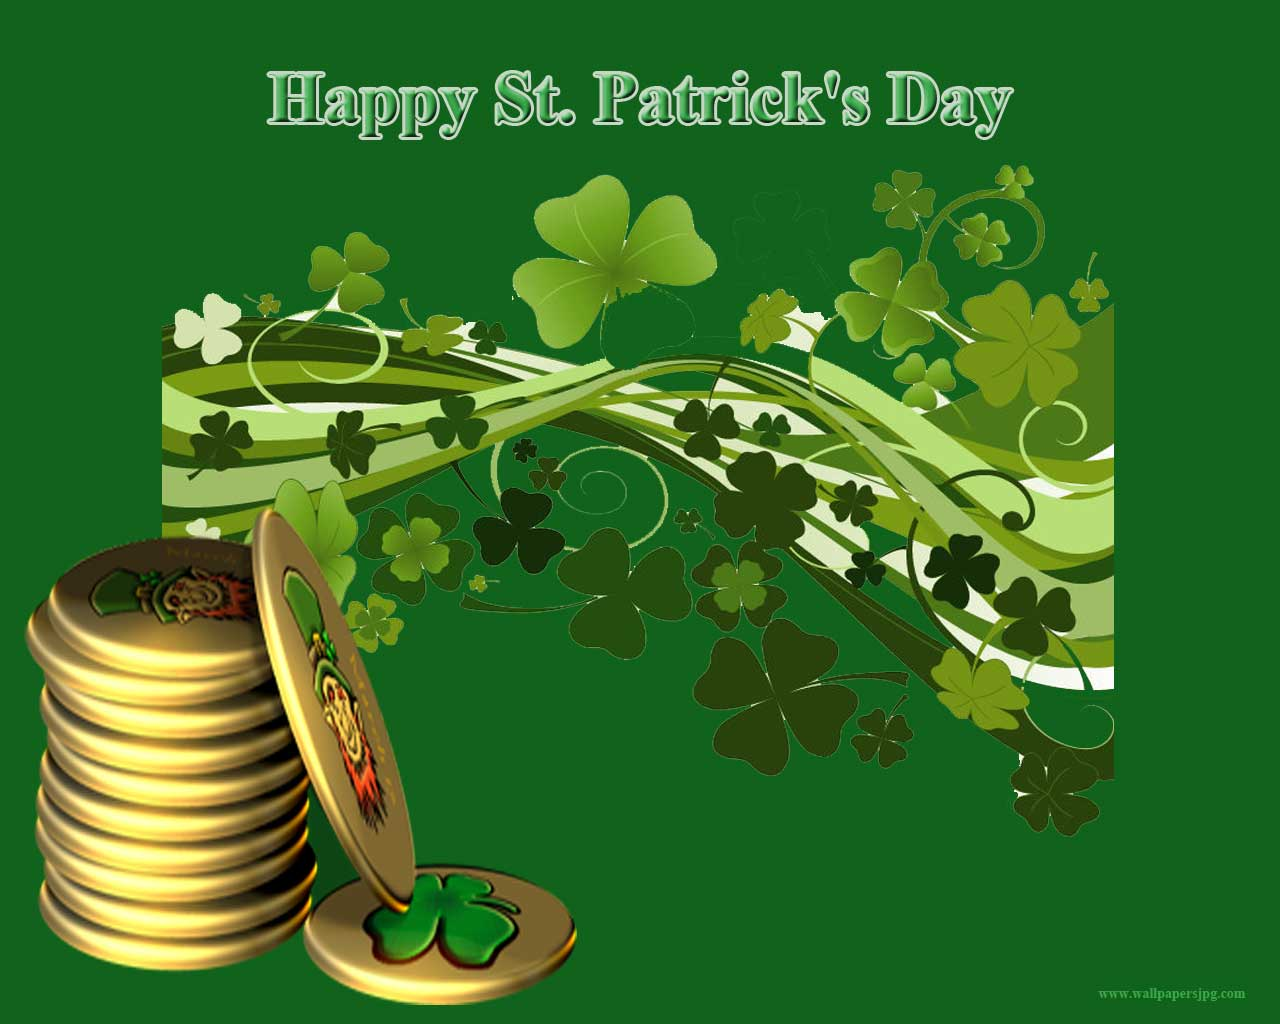 http://2.bp.blogspot.com/-2zlrNYkuxFA/T5OhBkhlc4I/AAAAAAAAIfo/fz2uejLn97Y/s1600/st_patricks_day_wallpaper_wishes_greetings_northern_ireland_christian_religion_festival_jesus(www.picturespool.blogspot.com)_10.jpg